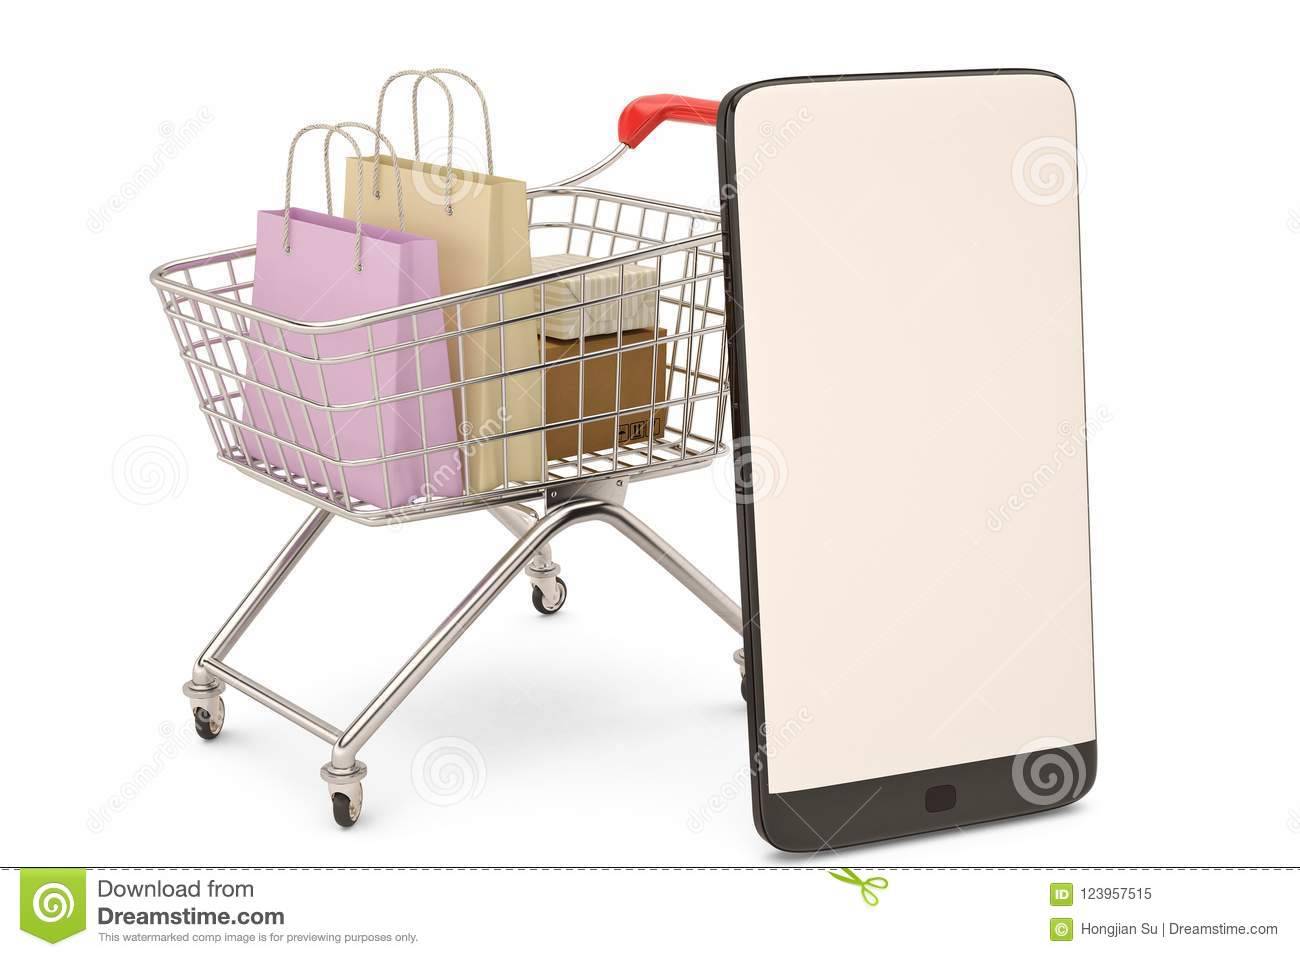 6668a3e8d Online shopping concept mobile phone or smartphone with cart and boxes and  bag.3D illustration.